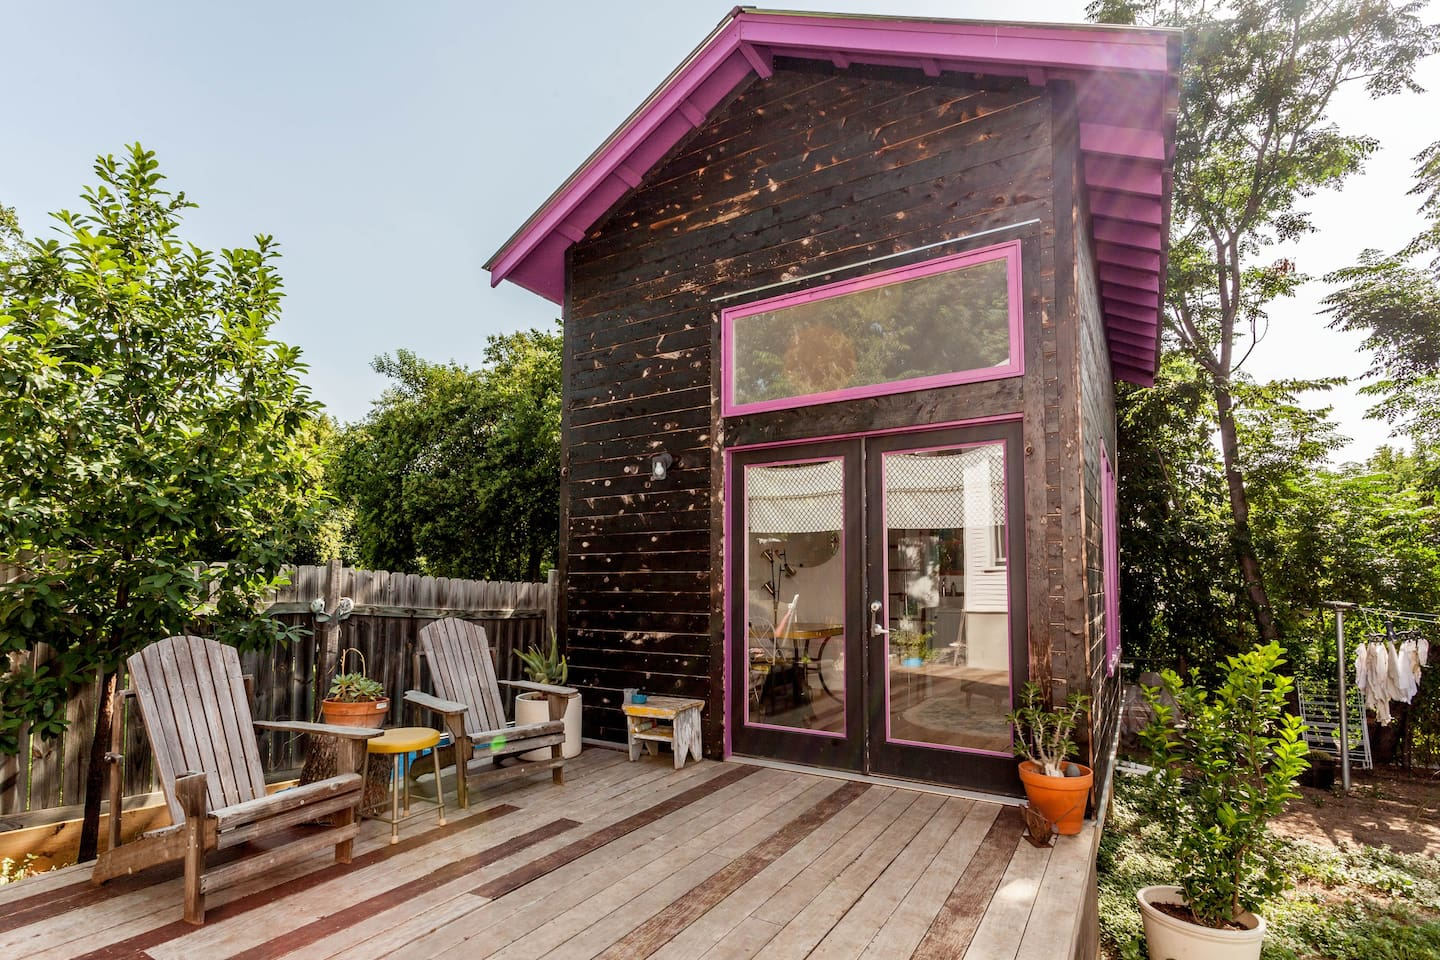 Lofted backyard studio with awesome deck